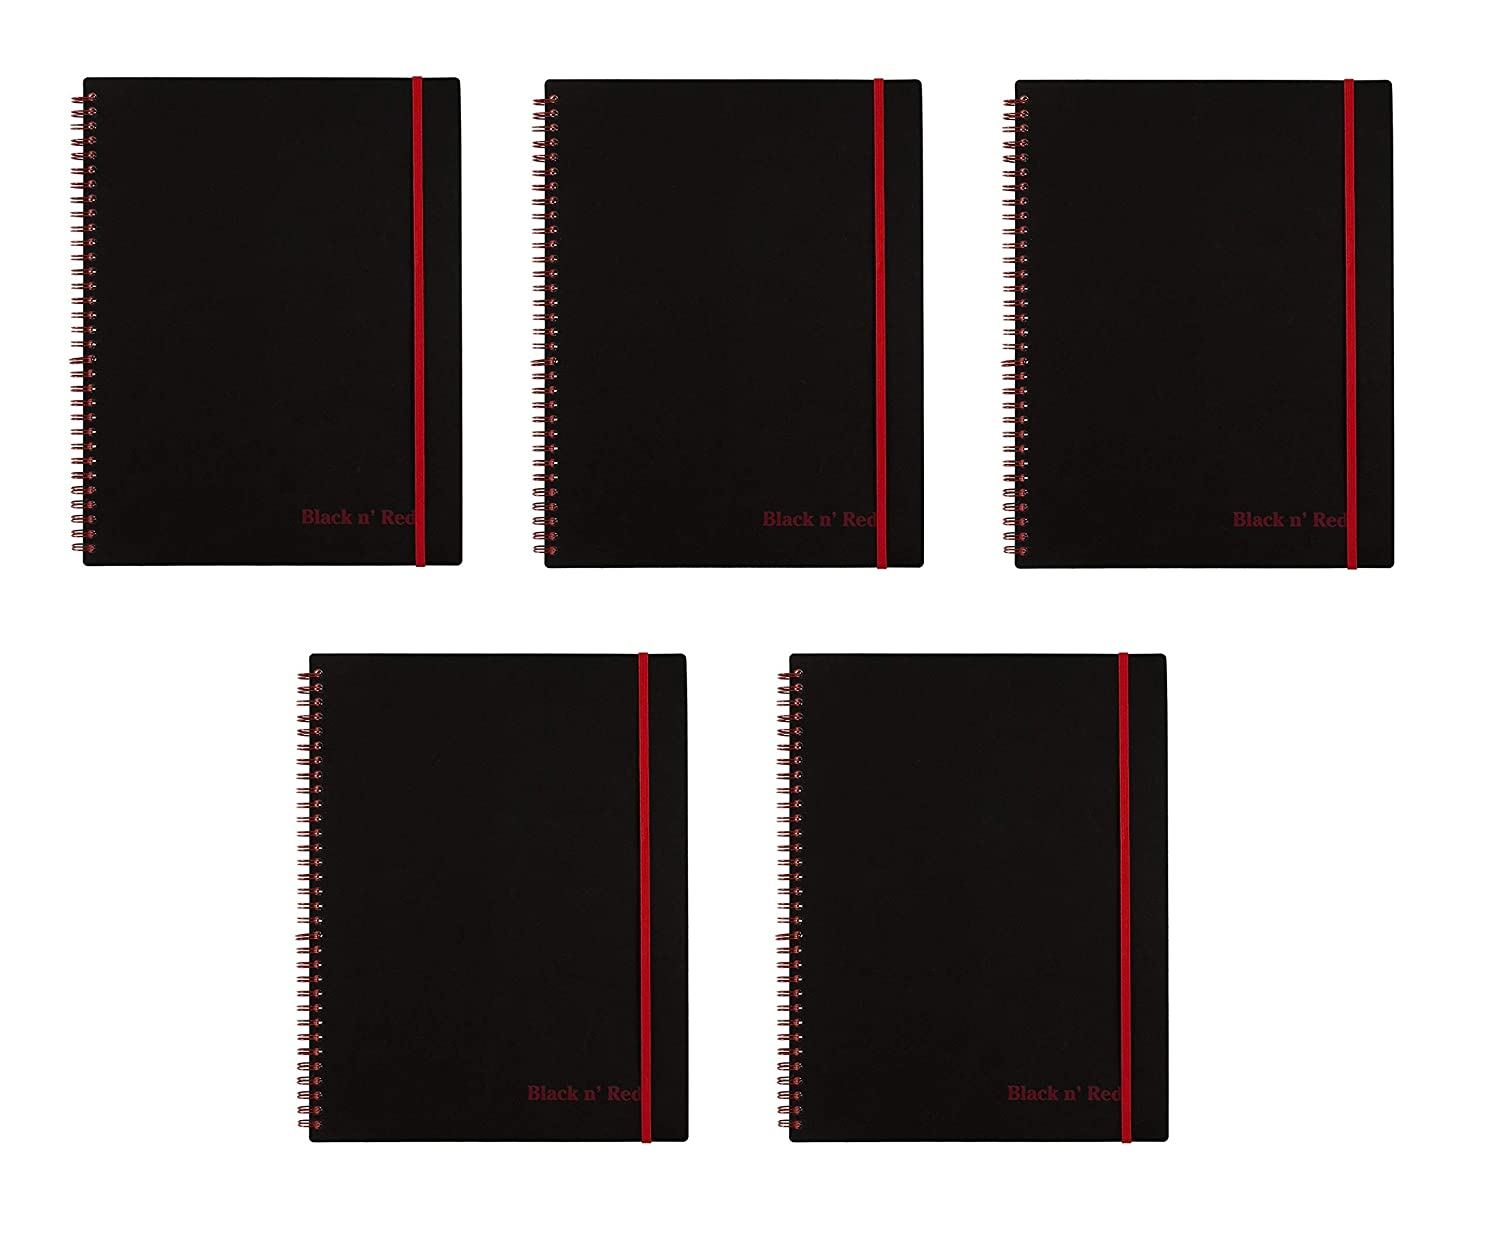 K66652 11 x 8-1//2 70 Ruled Sheets Sold as 5 Pack Black n Red Twin Wire Poly Cover Notebook Black//Red